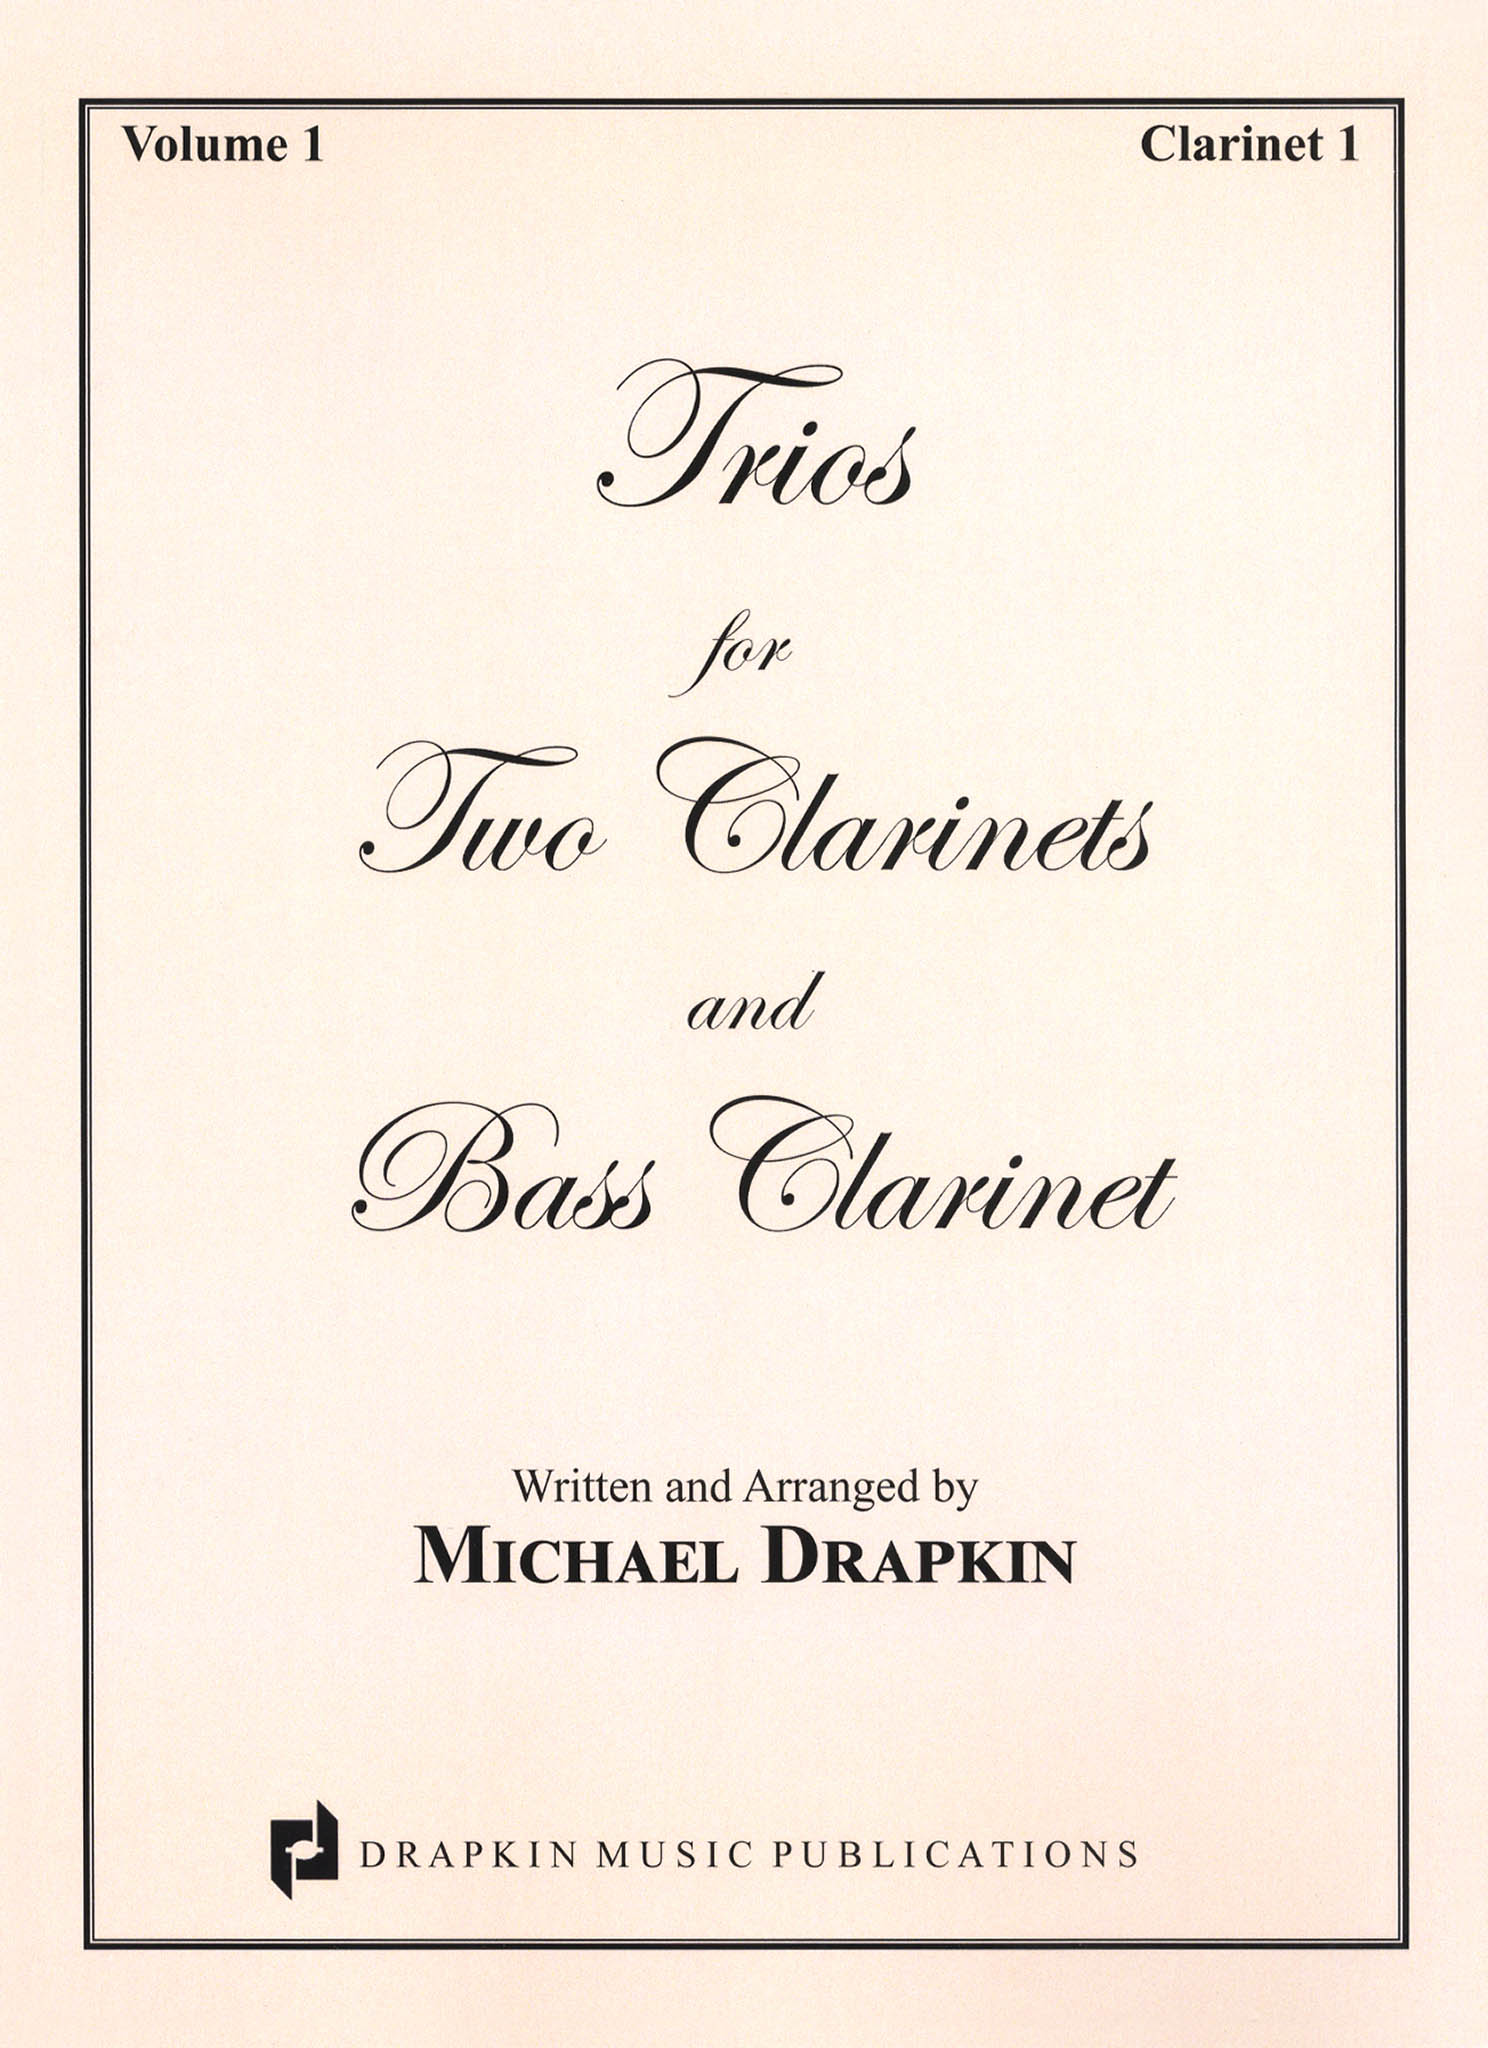 Drapkin Clarinet Trios Volume 1 (parts) Cover